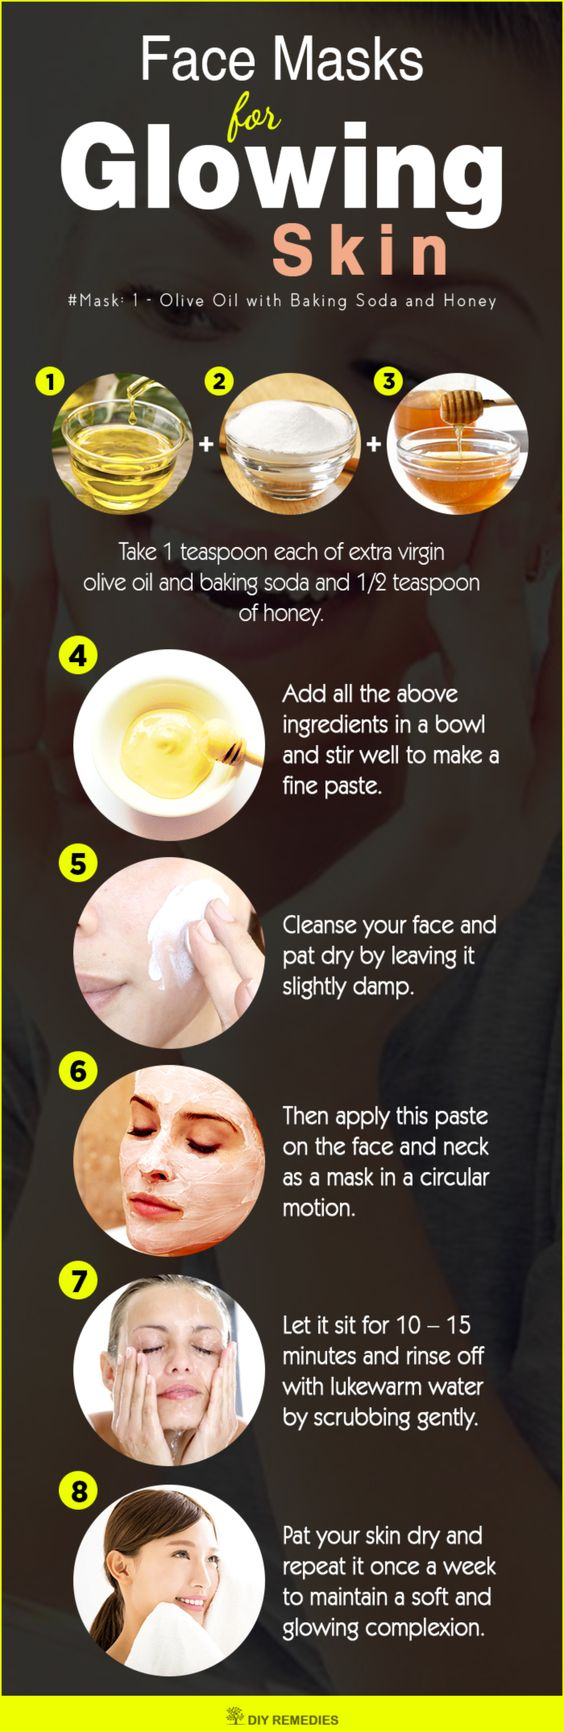 DIY Face Masks for Glowing Skin  This face mask is suitable for all skin types. Olive oil penetrates deep into the skin, moisturizes properly, promotes elasticity and reduces blemishes to get a soft and smooth skin. #DIY #GlowingSkin #Facemasks